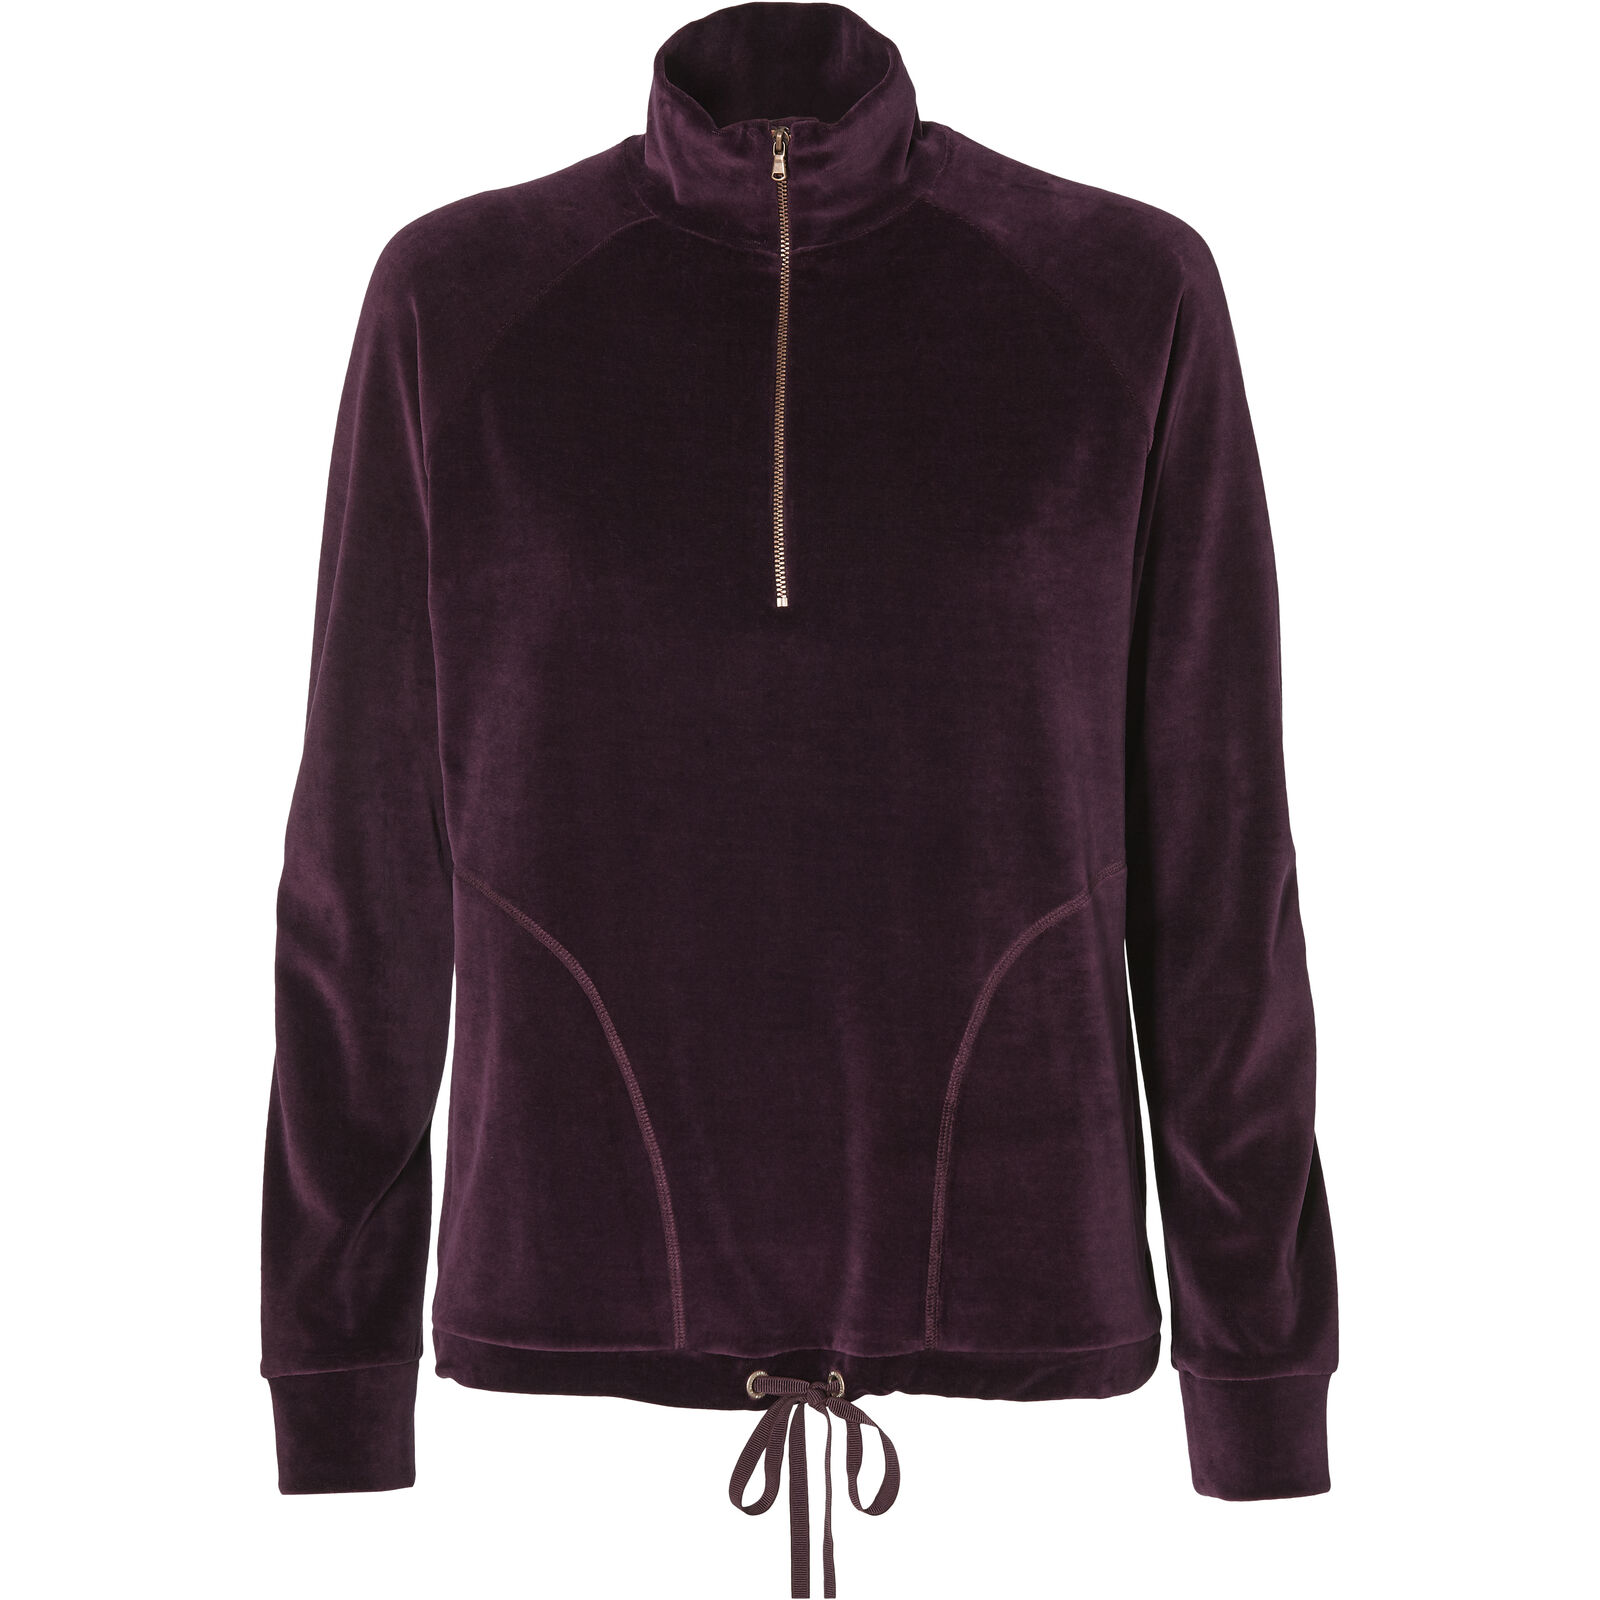 O'Neill Sweatshirt Sweater Premium Ess Crew Sweat Purple Plain